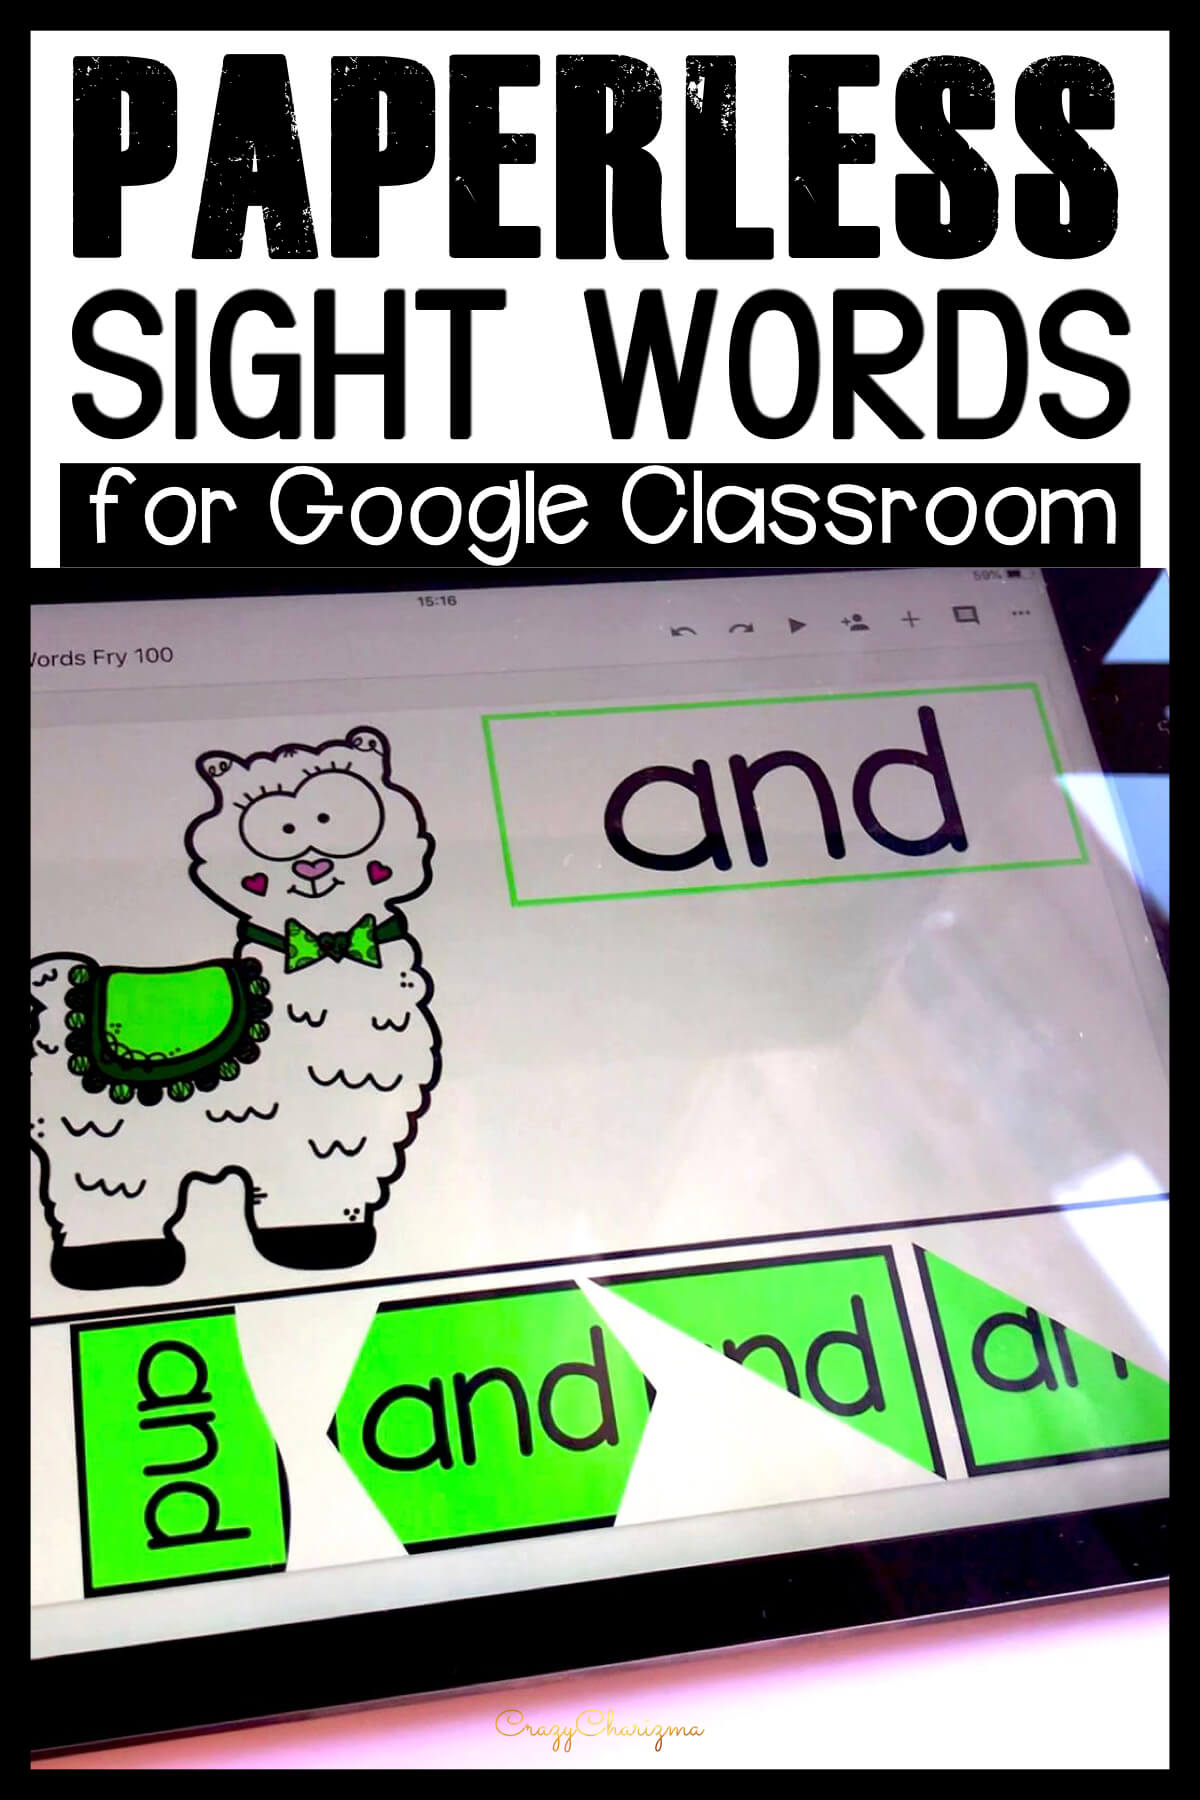 Google Classroom Activities for Kindergarten | Sight Word Games: Do your kids love llamas? Let these cuties teach and practice sight words with paperless activities. Make it fun and review high frequency words with Google Classroom!